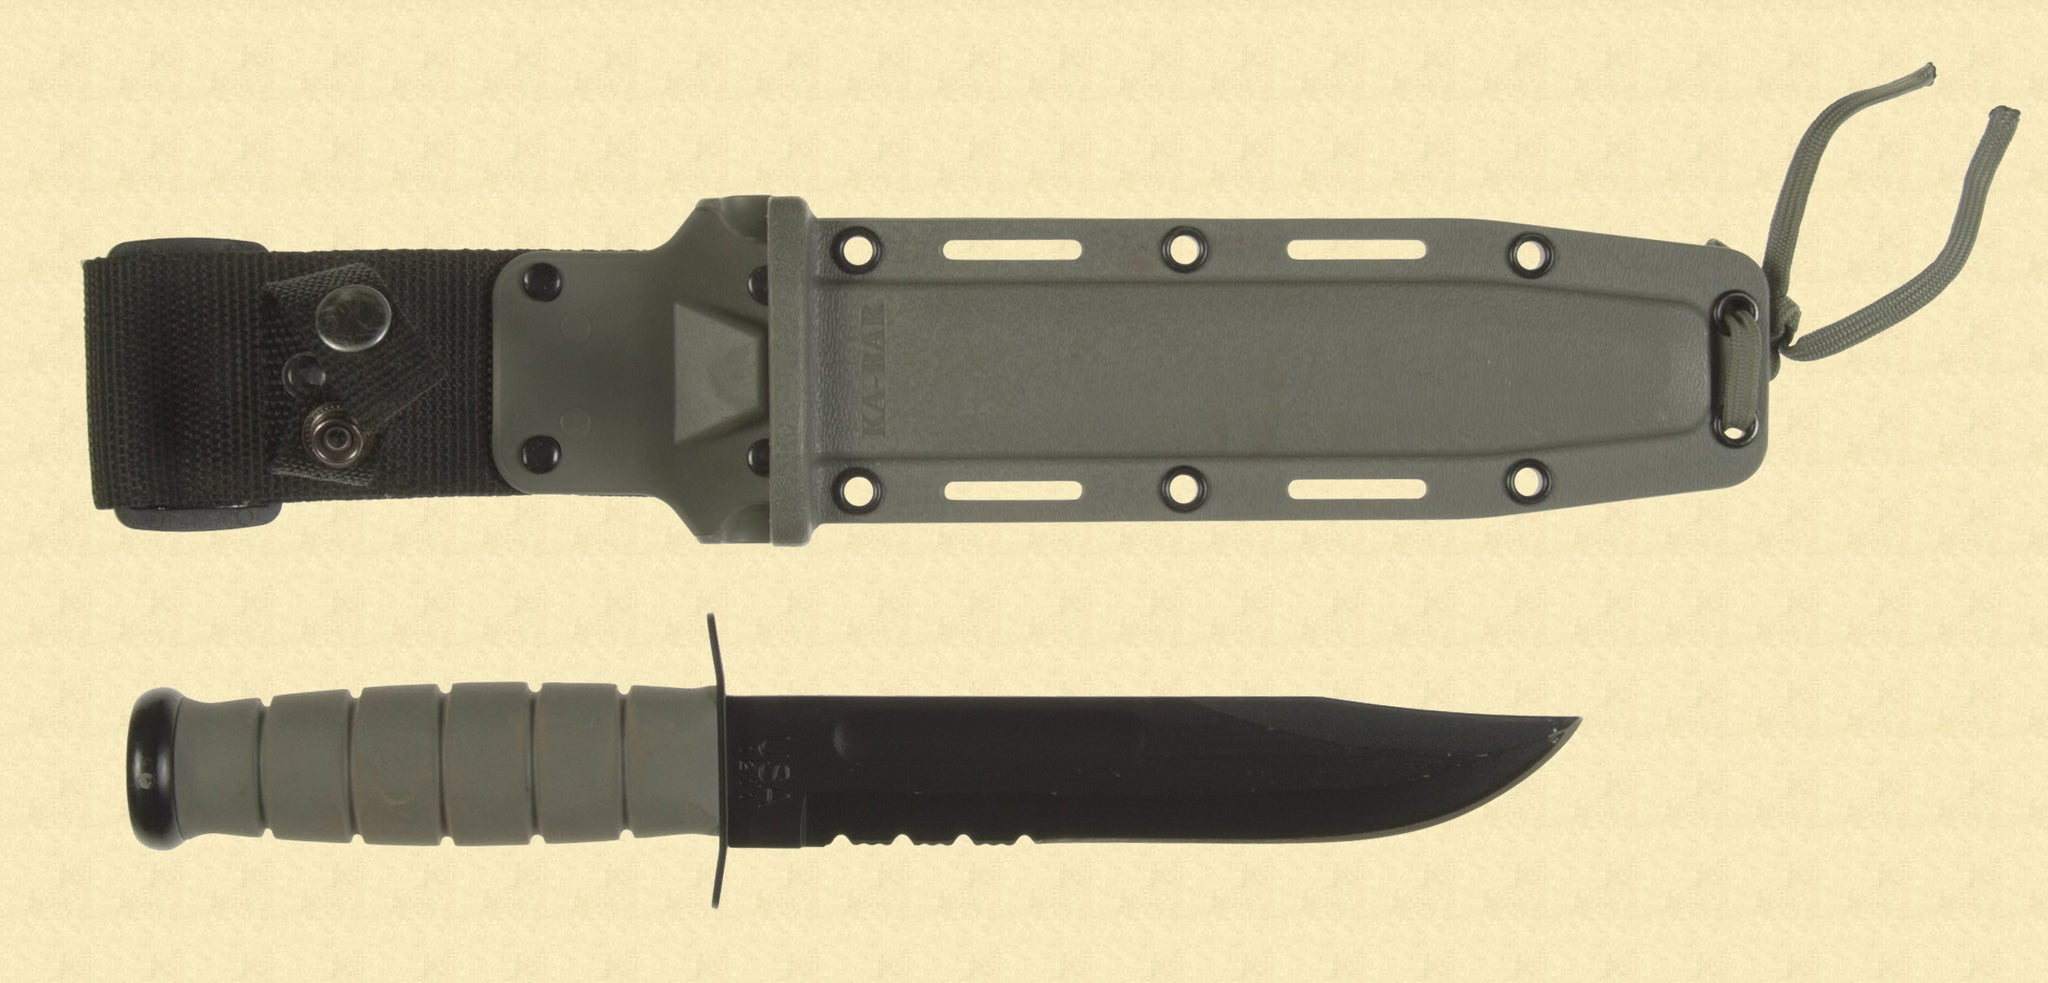 KABAR FIGHTING KNIFE